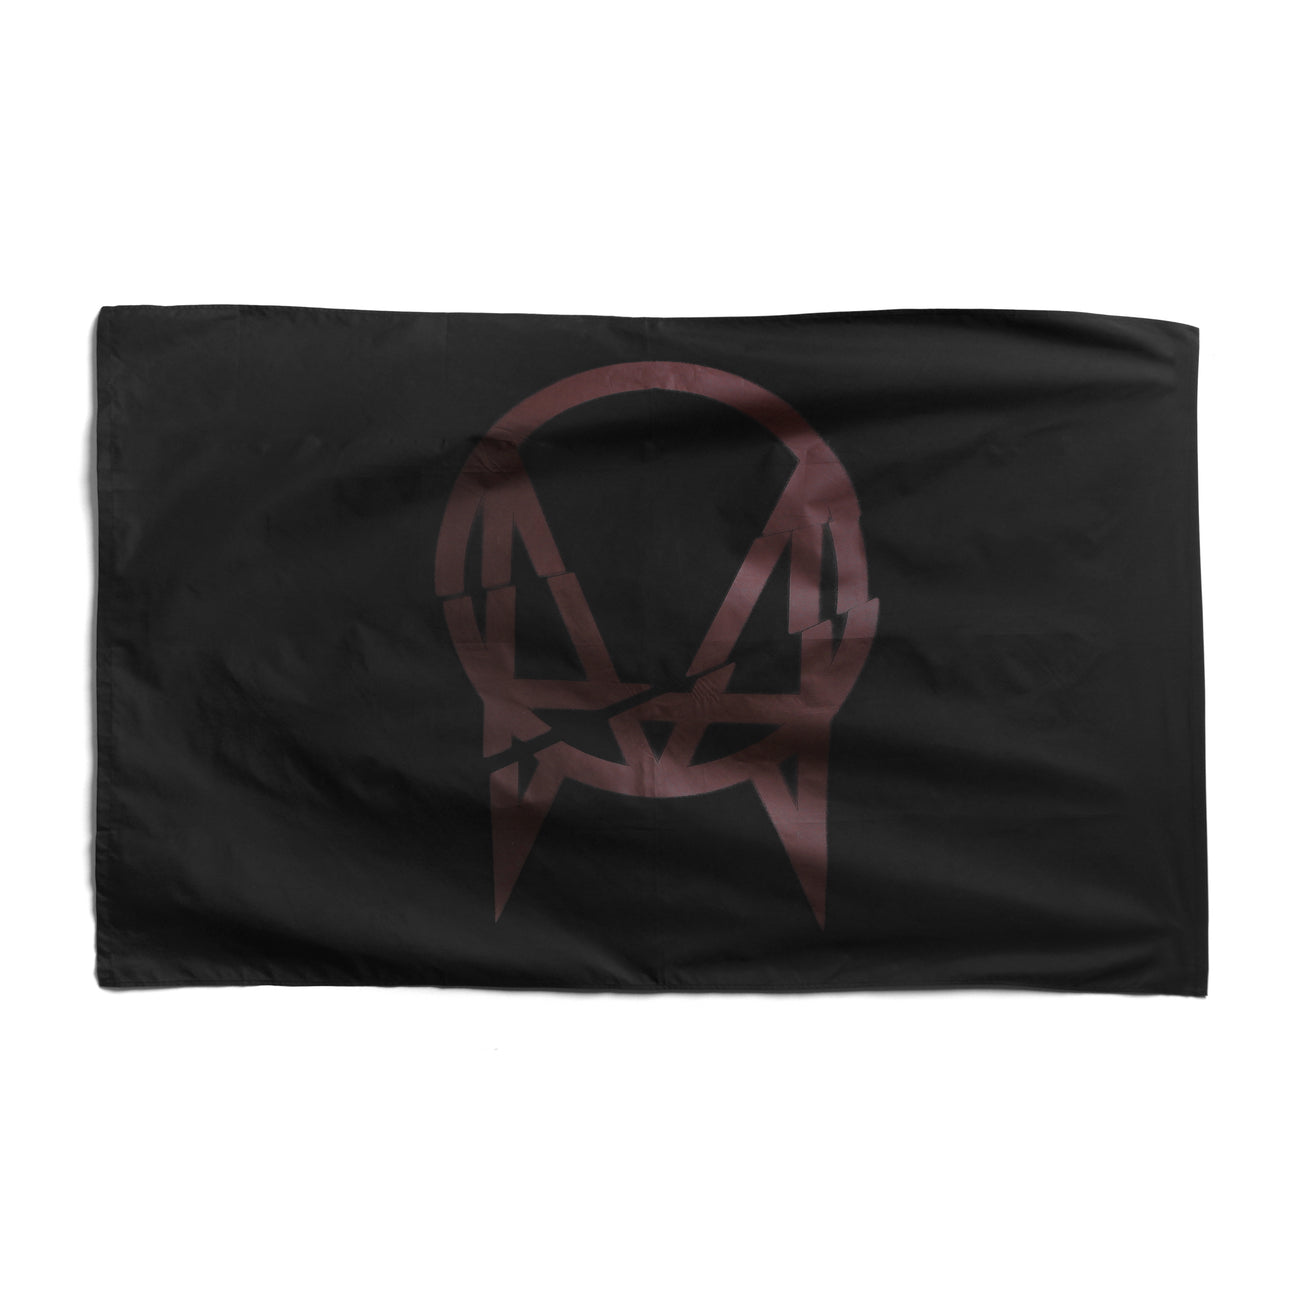 OWSLA CRACKED LOGO FLAG - BLACK